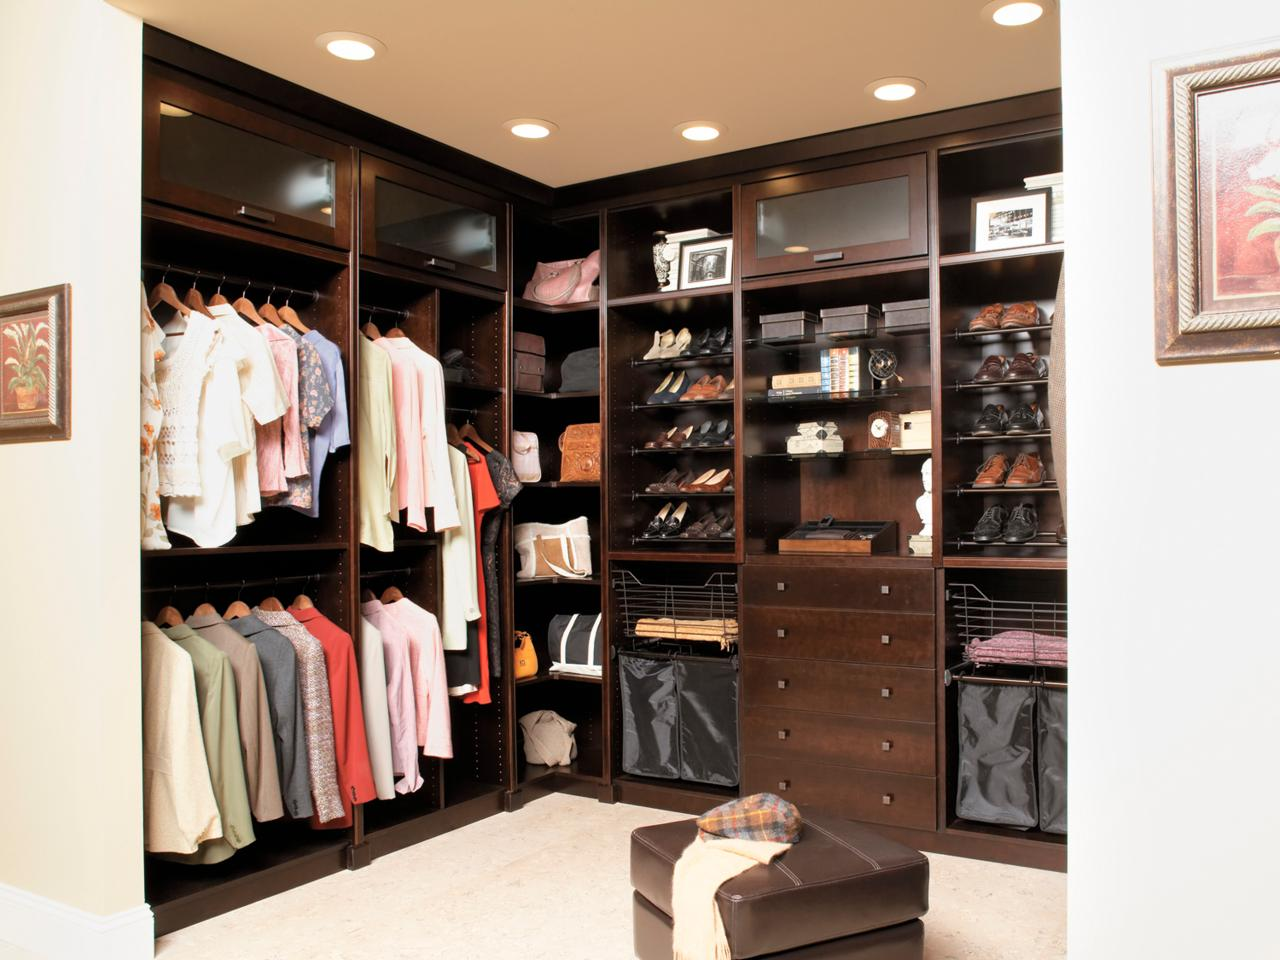 Big Closet Design Ideas | HGTV